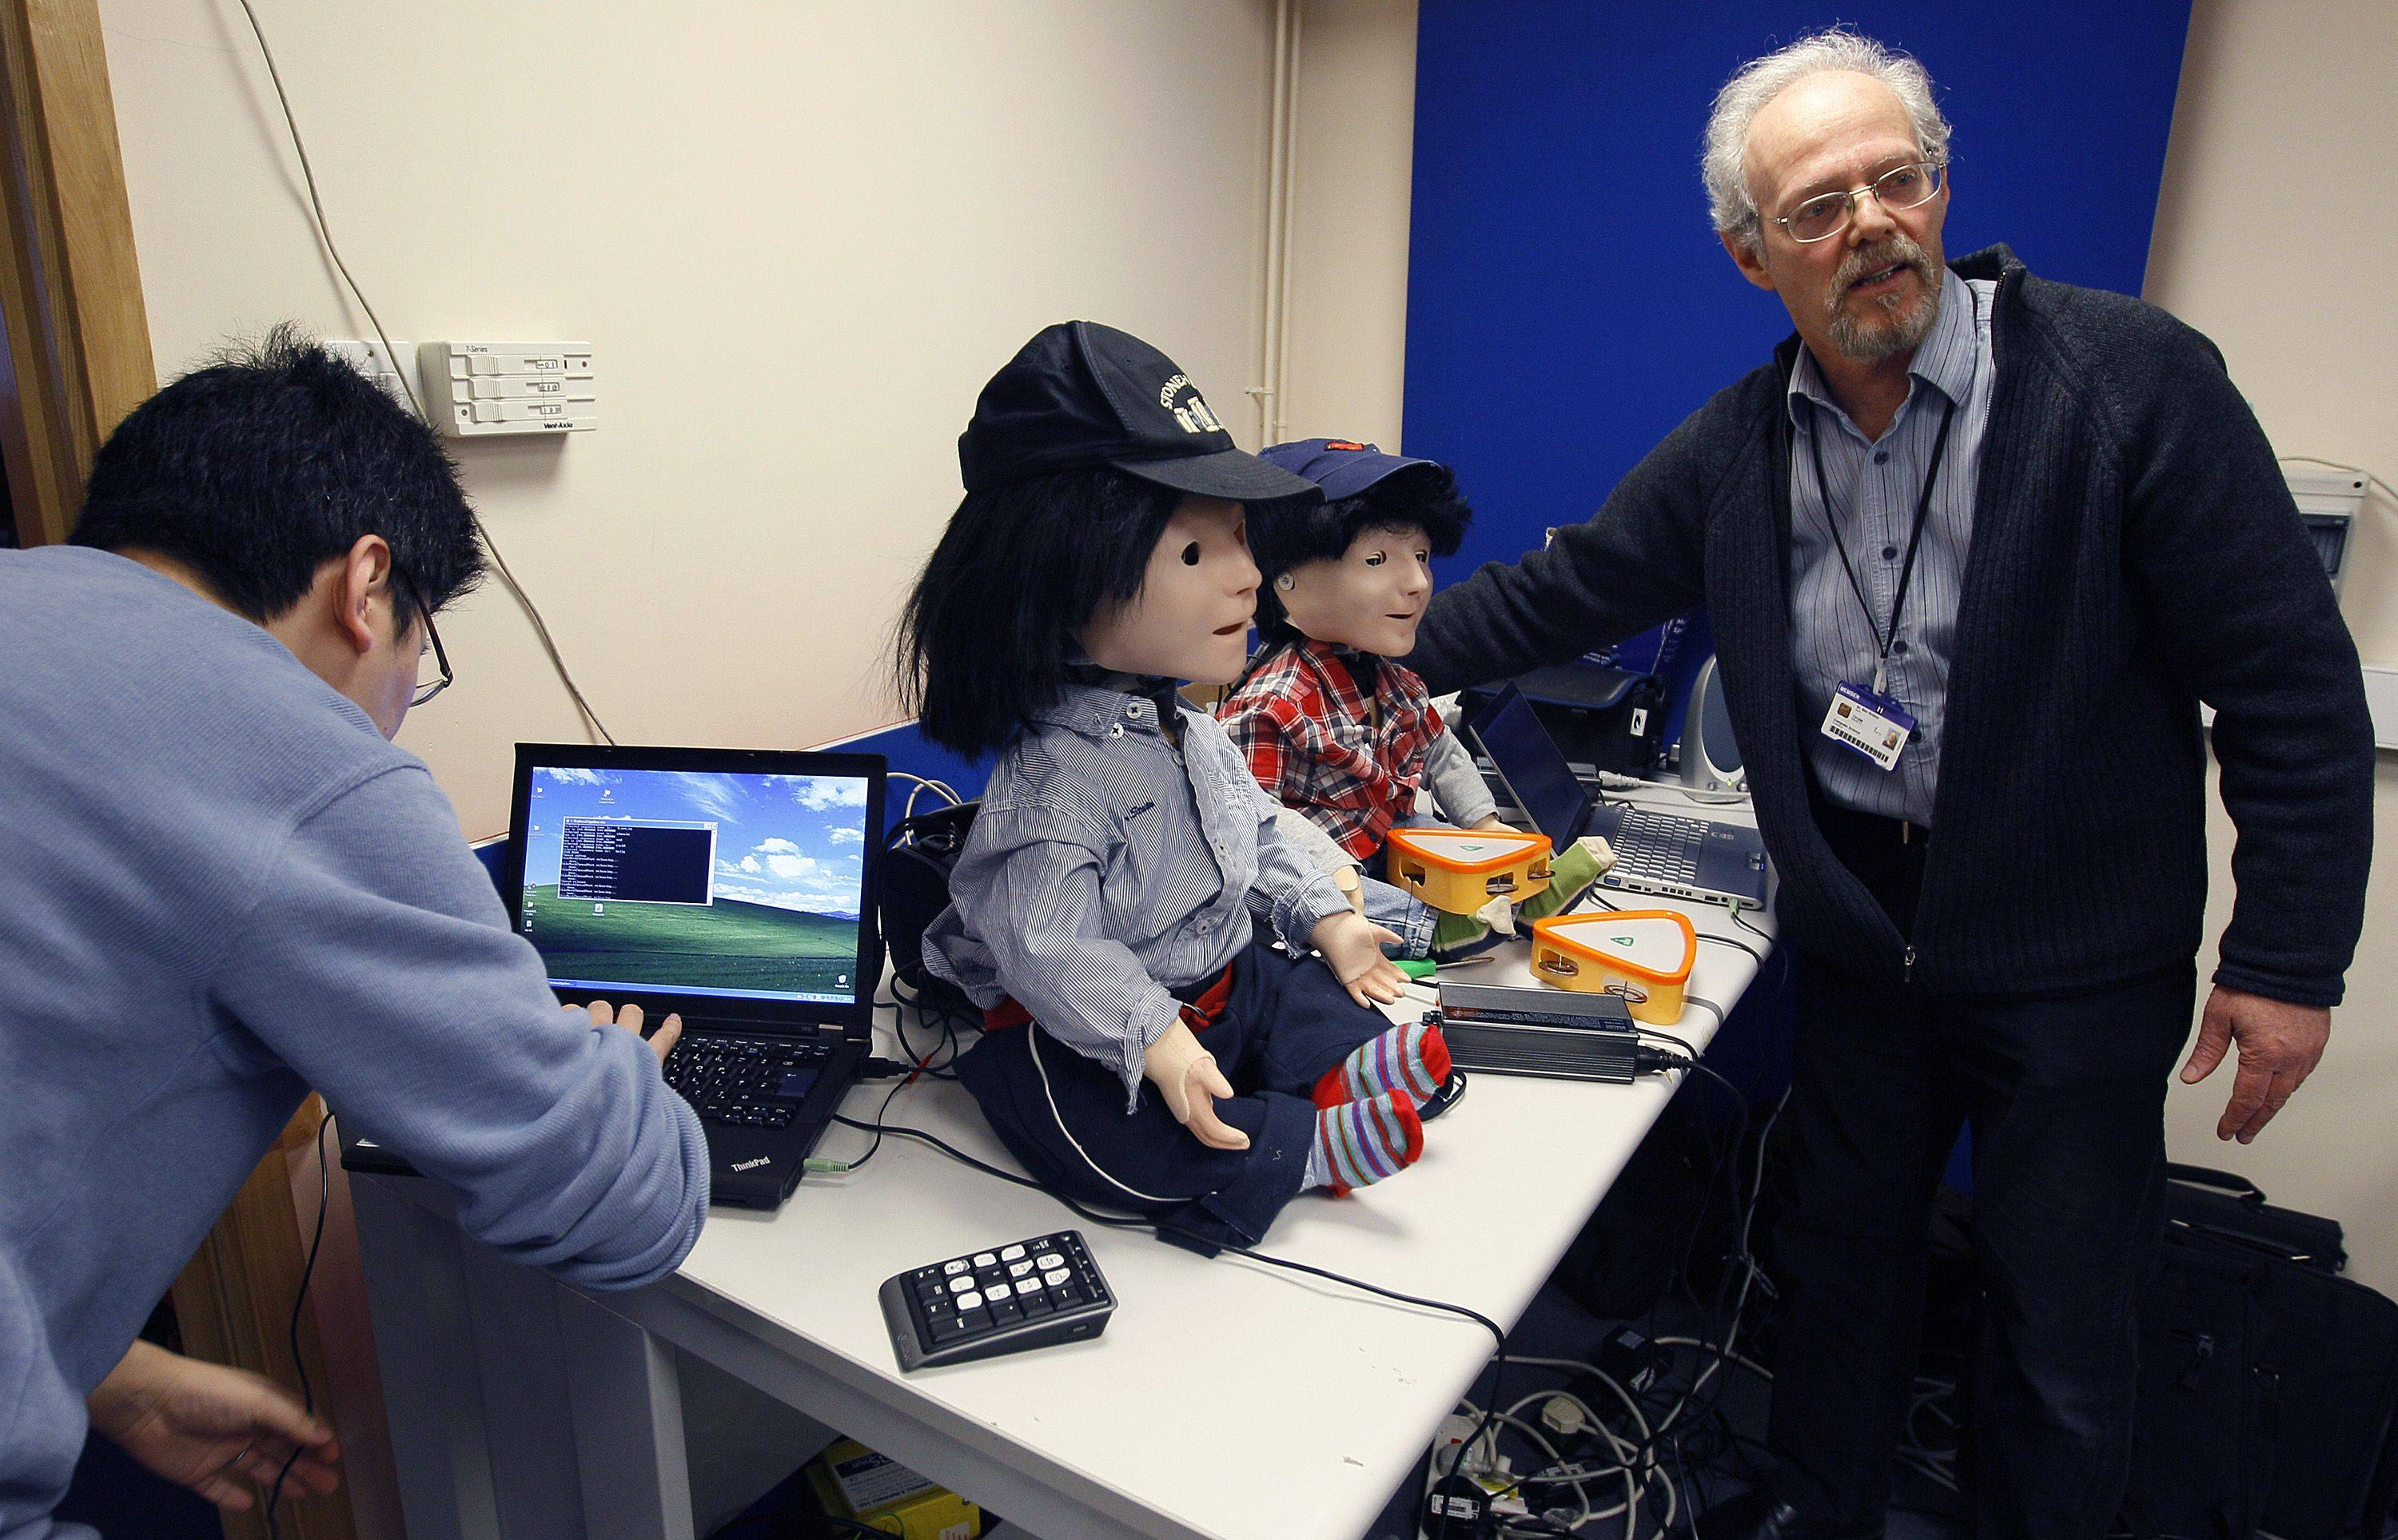 Dr. Ben Robins, right, shows off two Kaspar robots that he hopes will help autistic children. The children play with the robot alongside a scientist who controls it with a remote control.